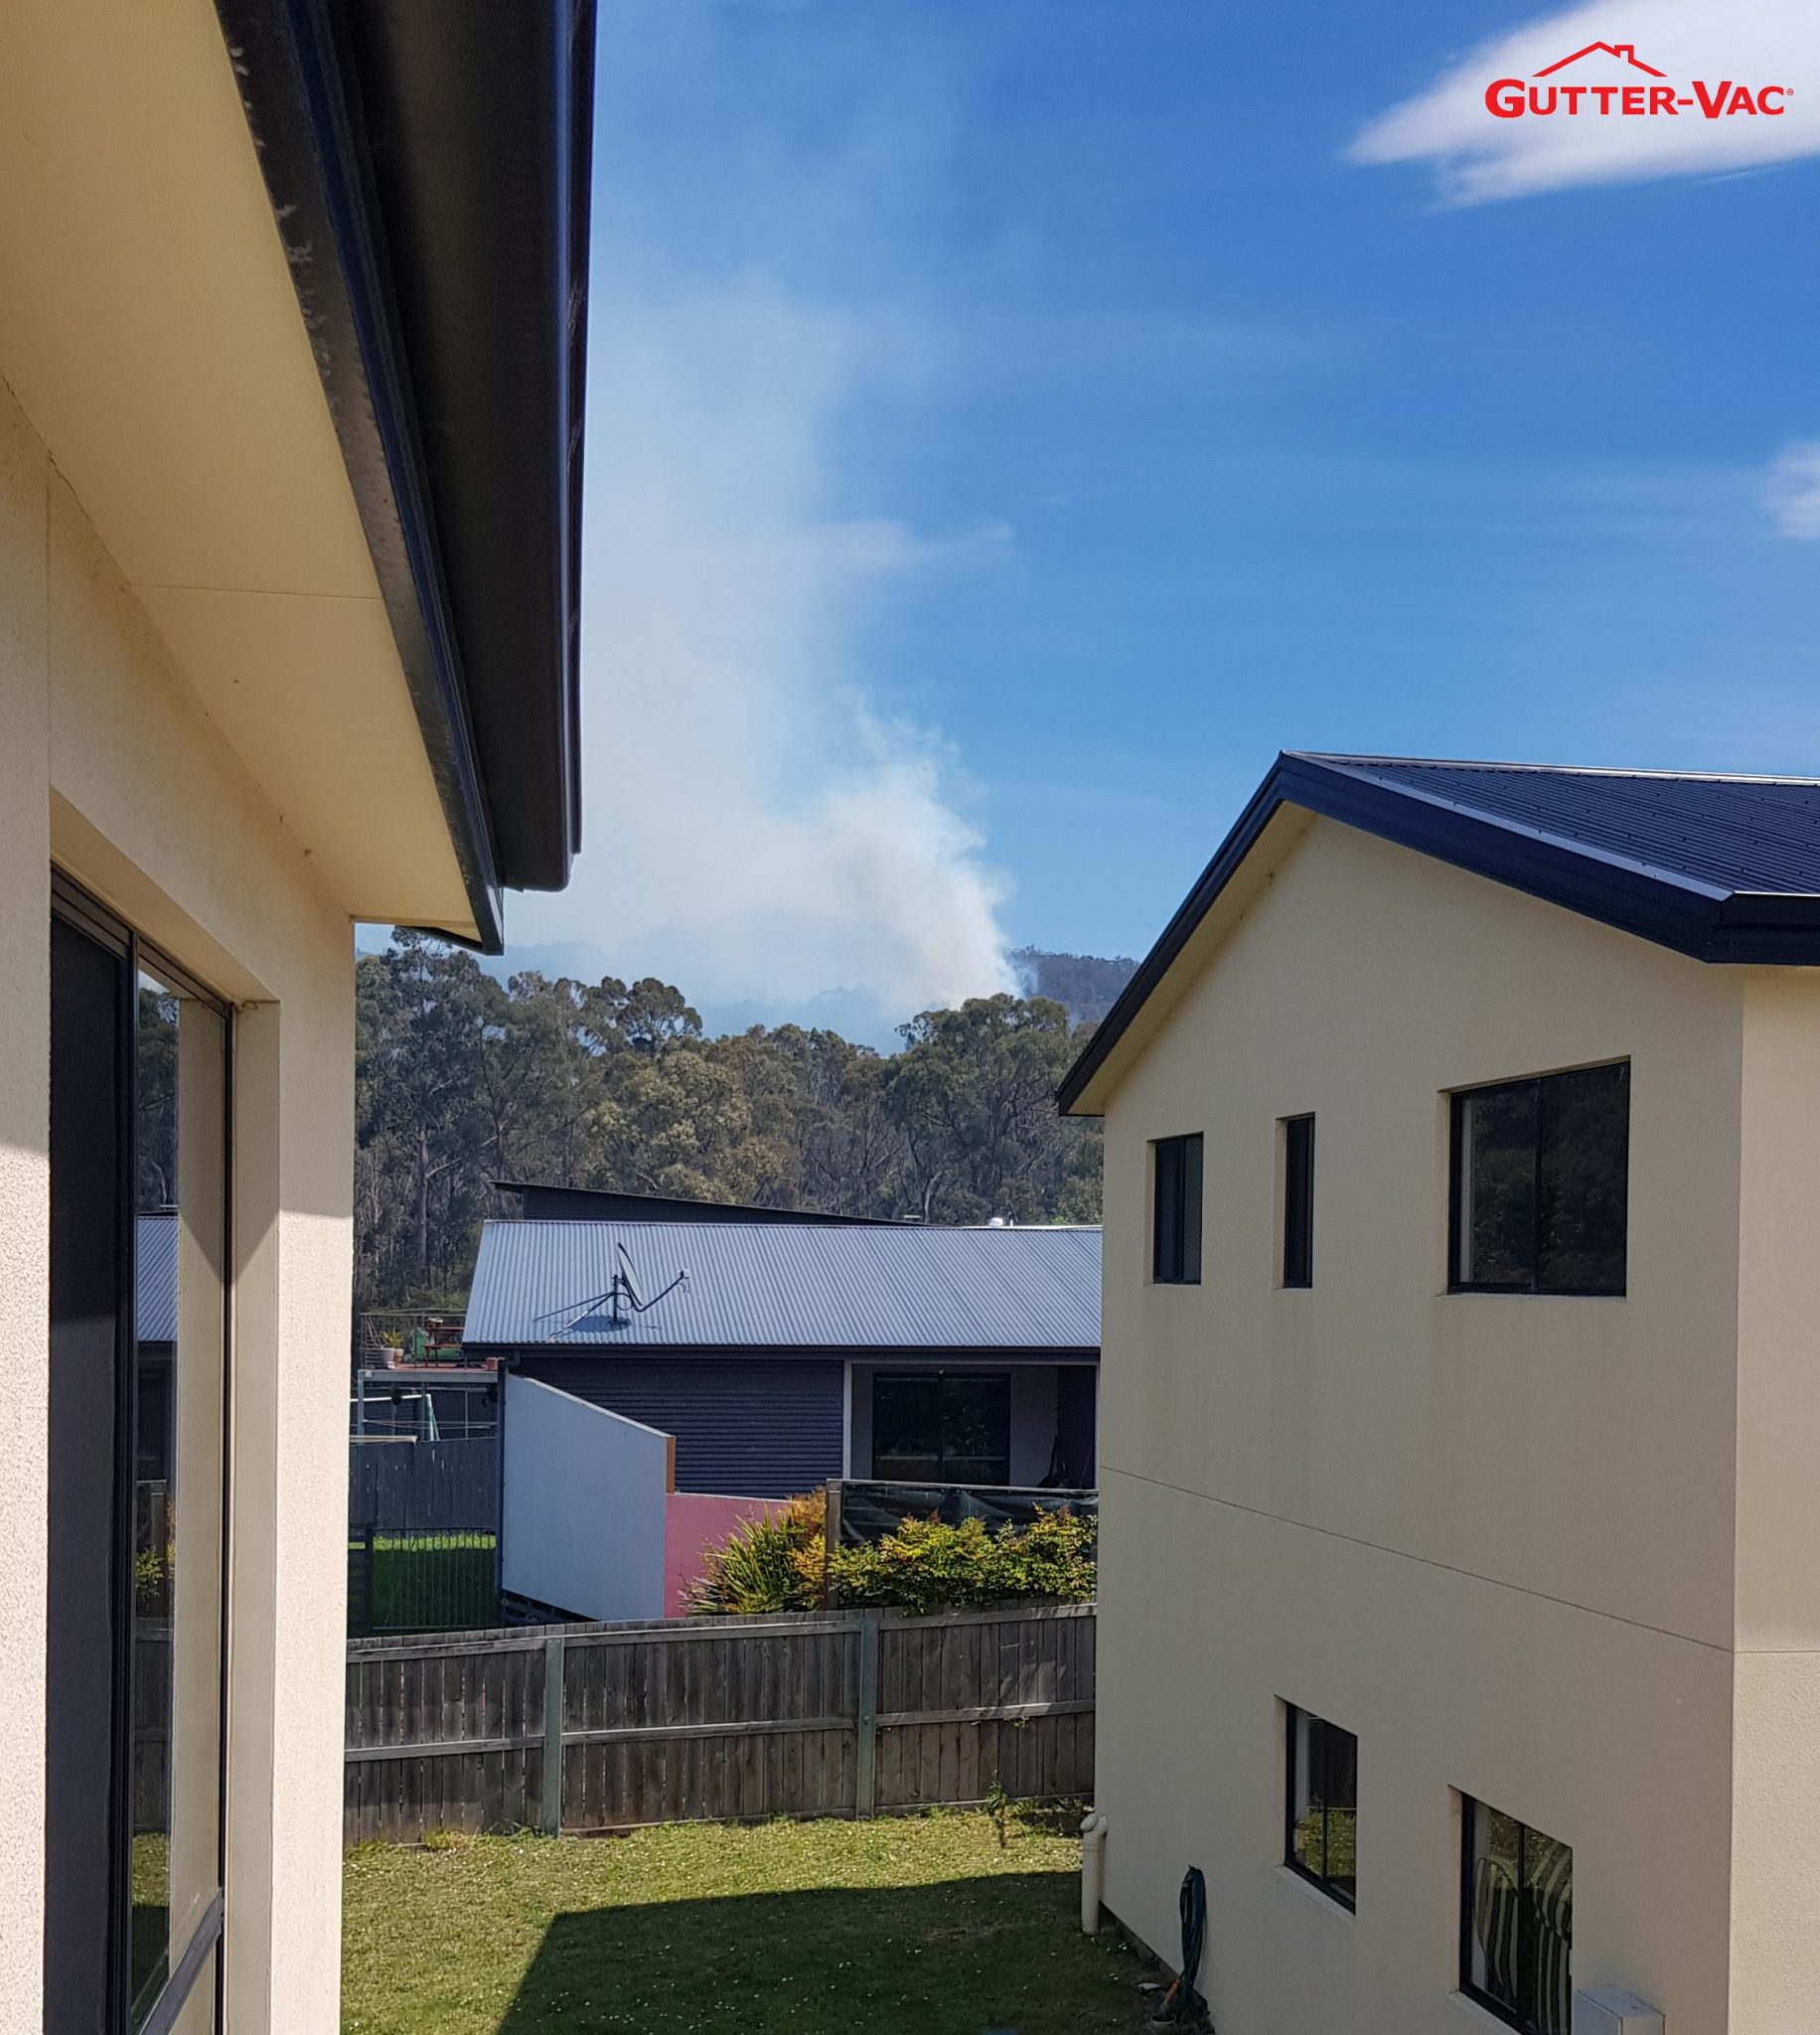 Gutter-Vac Tasmania Bush Fire Awareness